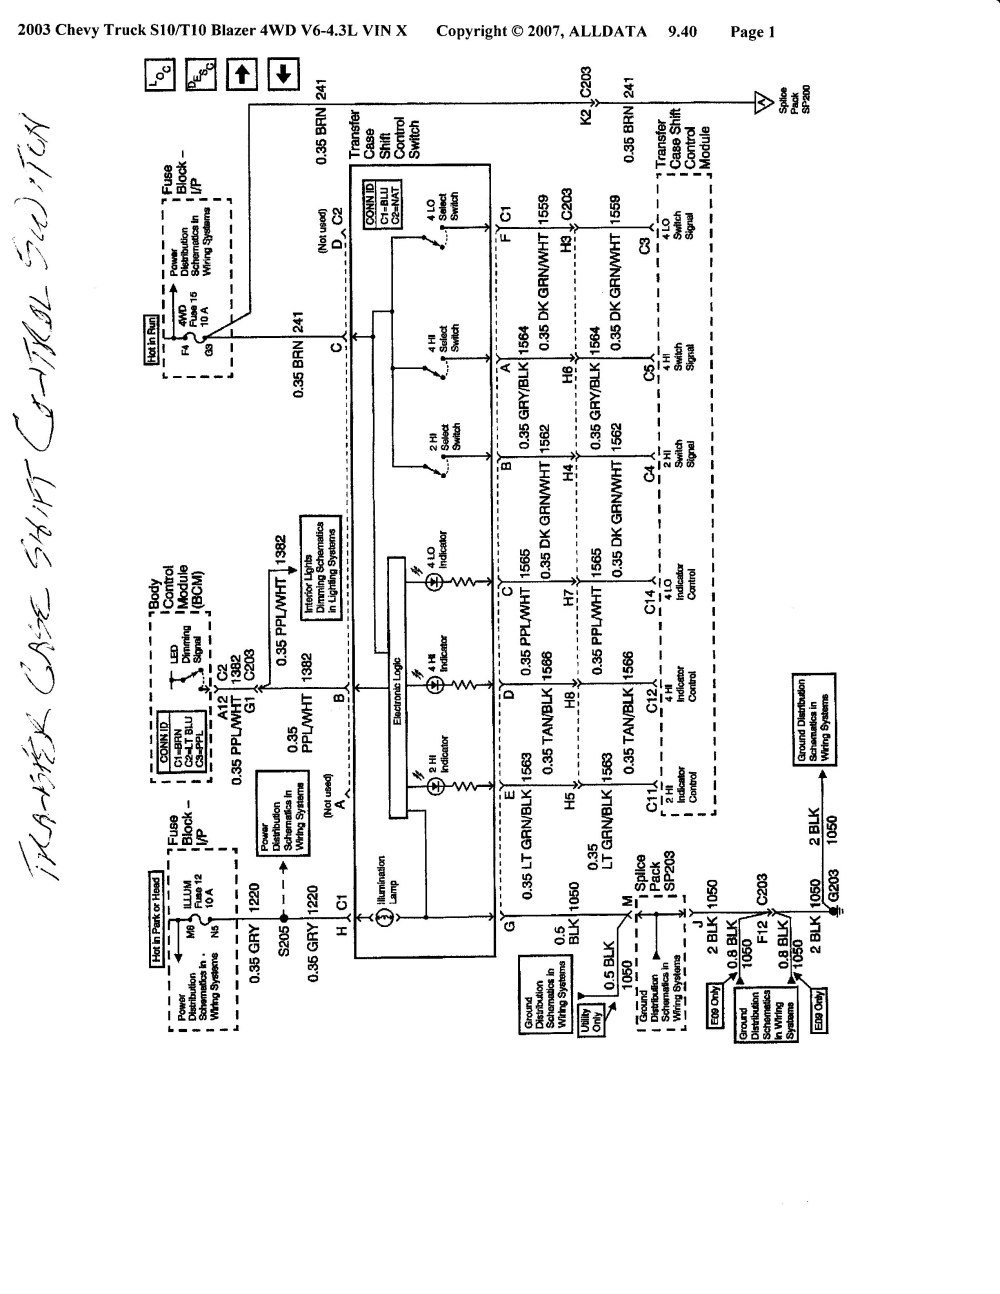 medium resolution of 1992 chevy s10 blazer wiring diagram auto electrical wiring diagram 2000 camaro wiring diagram 2000 blazer